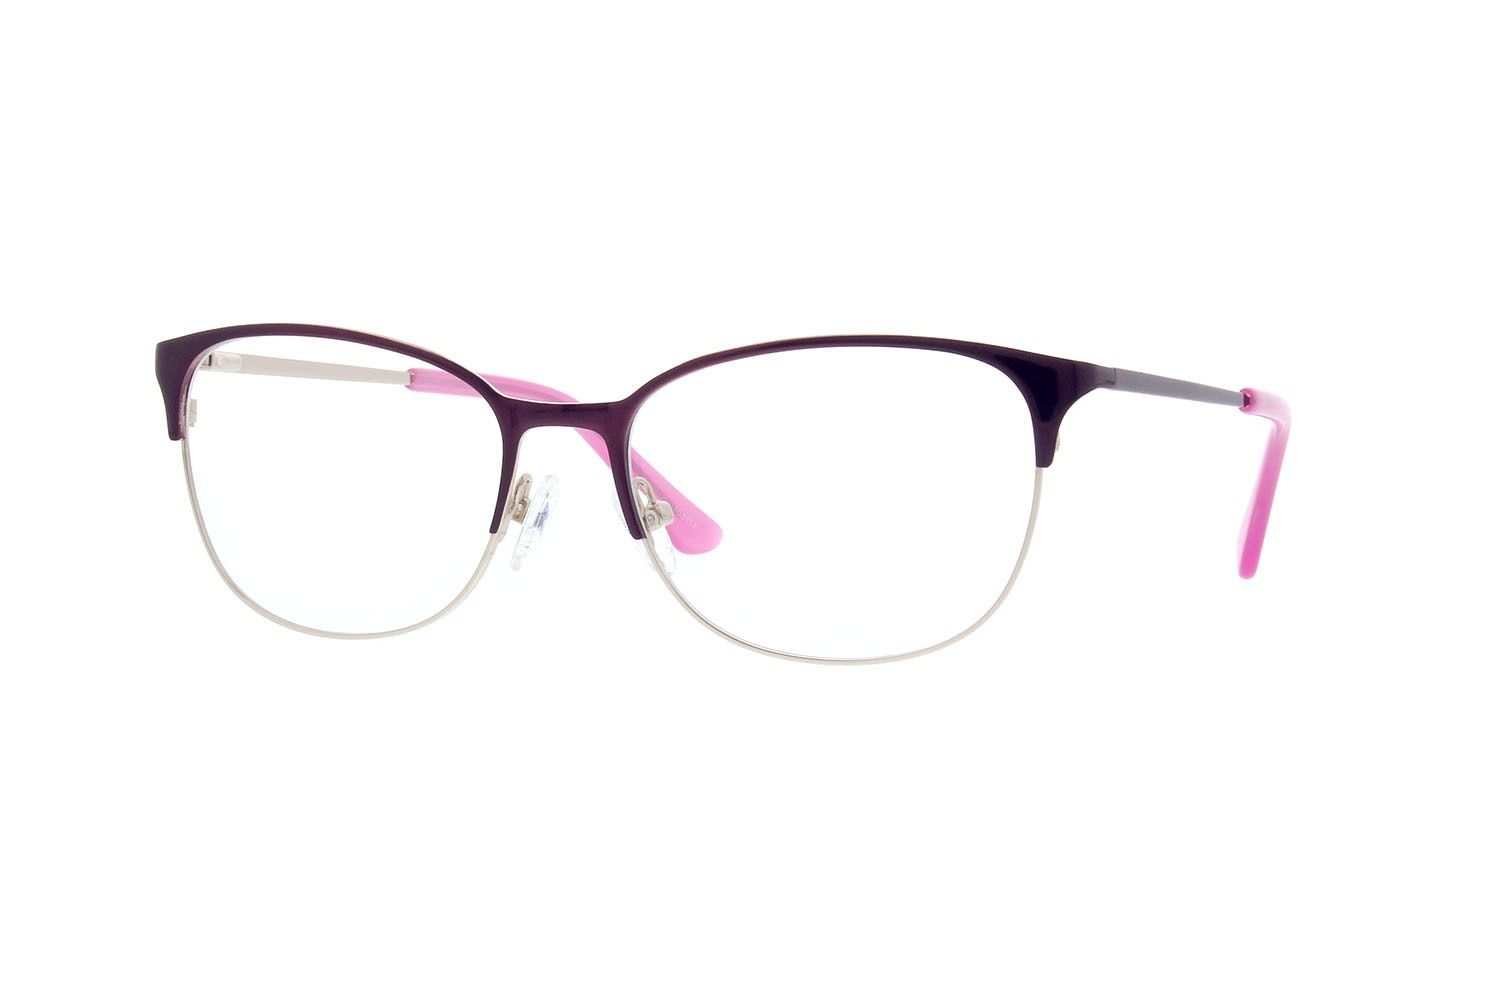 019622cd4f92 Order online, women purple full rim stainless steel cat-eye eyeglass frames  model #168117. Visit Zenni Optical today to browse our collection of glasses  and ...